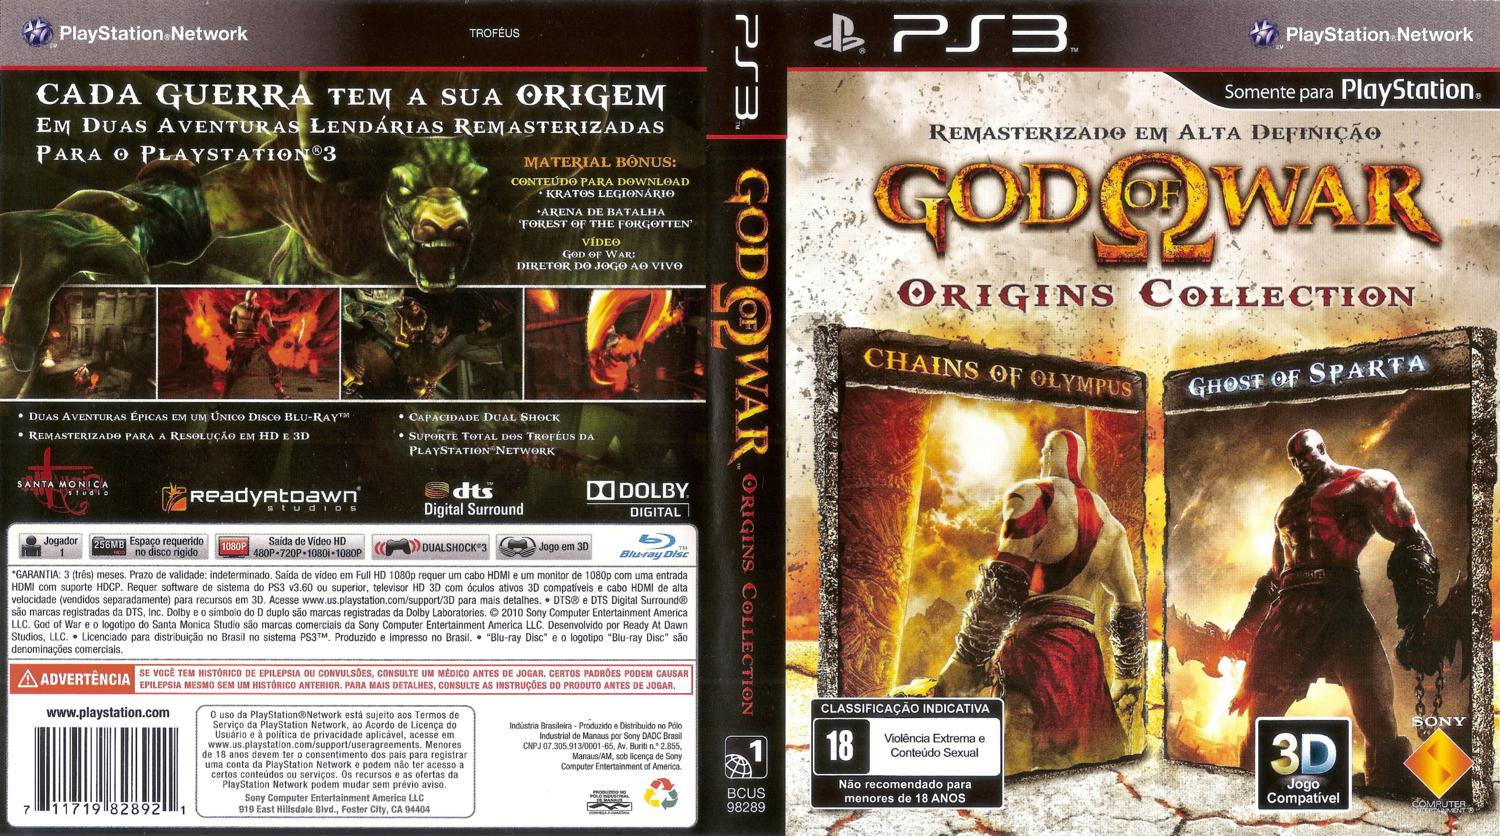 God of war collection ps3 free download.